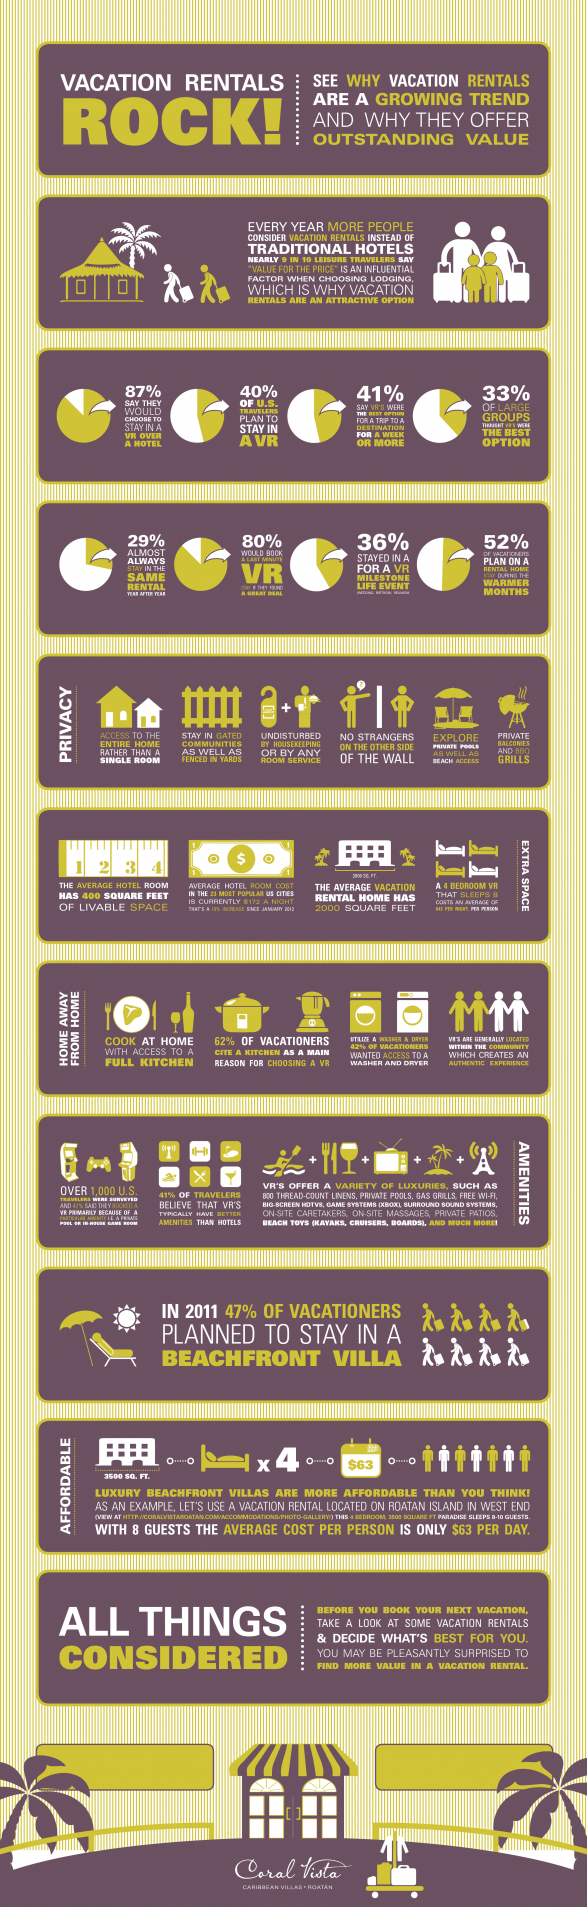 Vacation Rentals Infographic sample